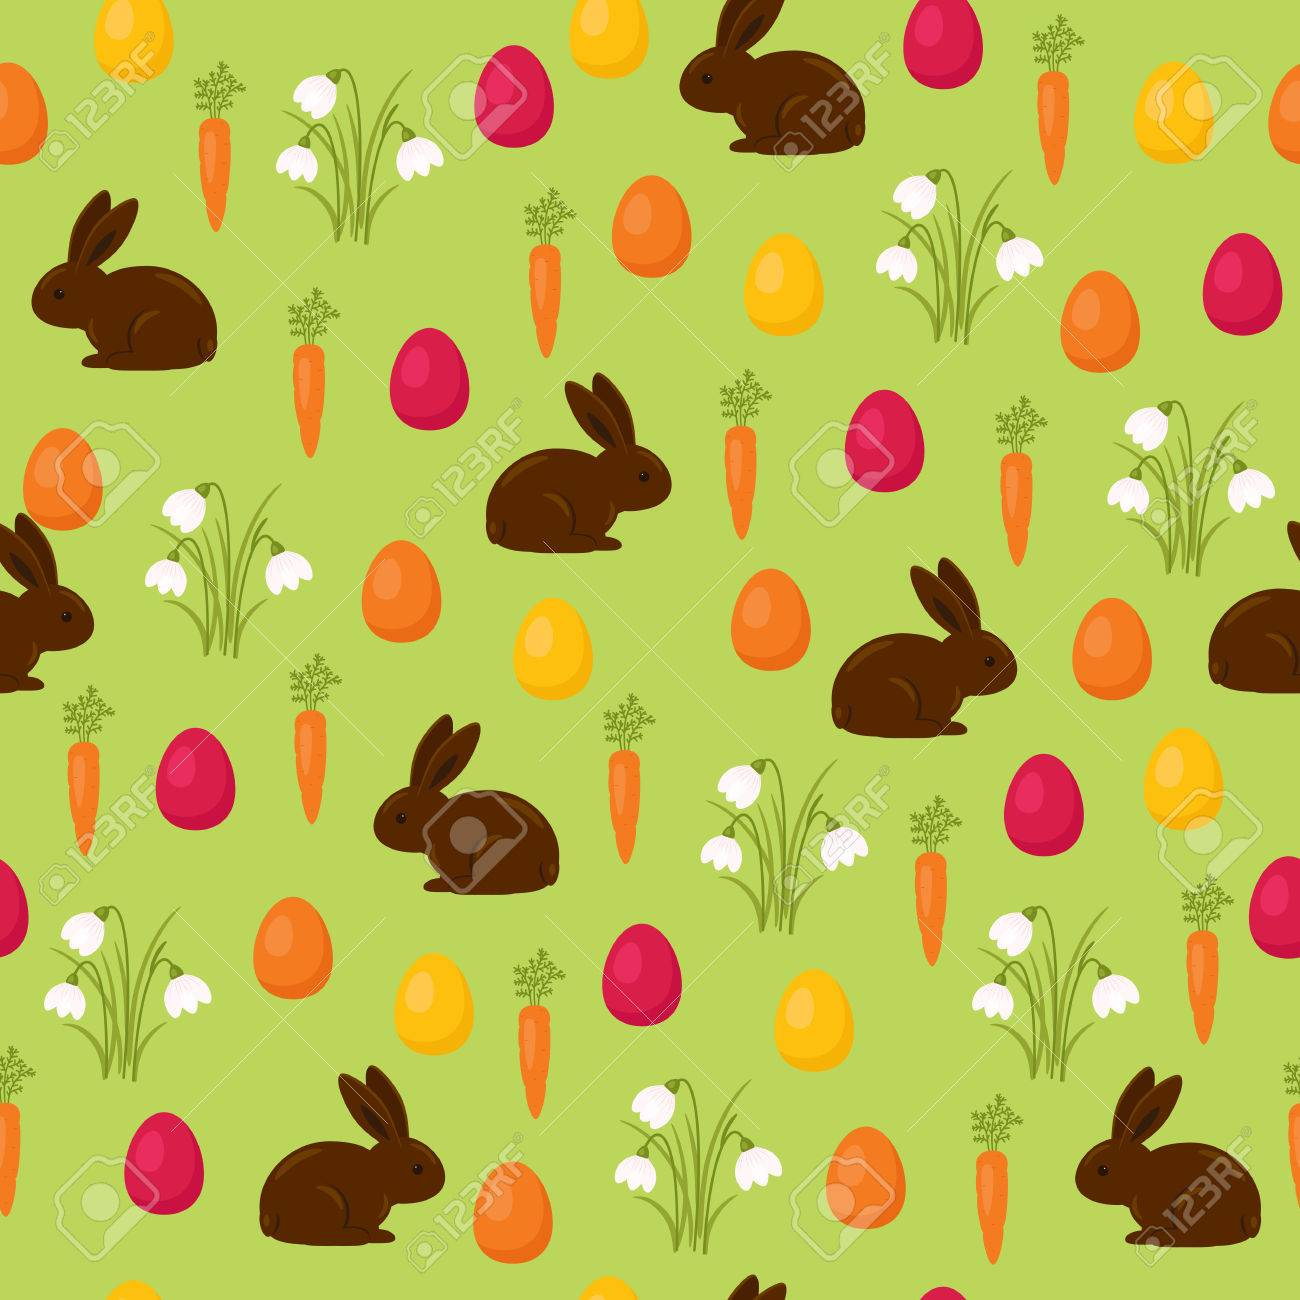 Easter Seamless Wallpaper Chocolate Bunny With Easter Basket 1300x1300